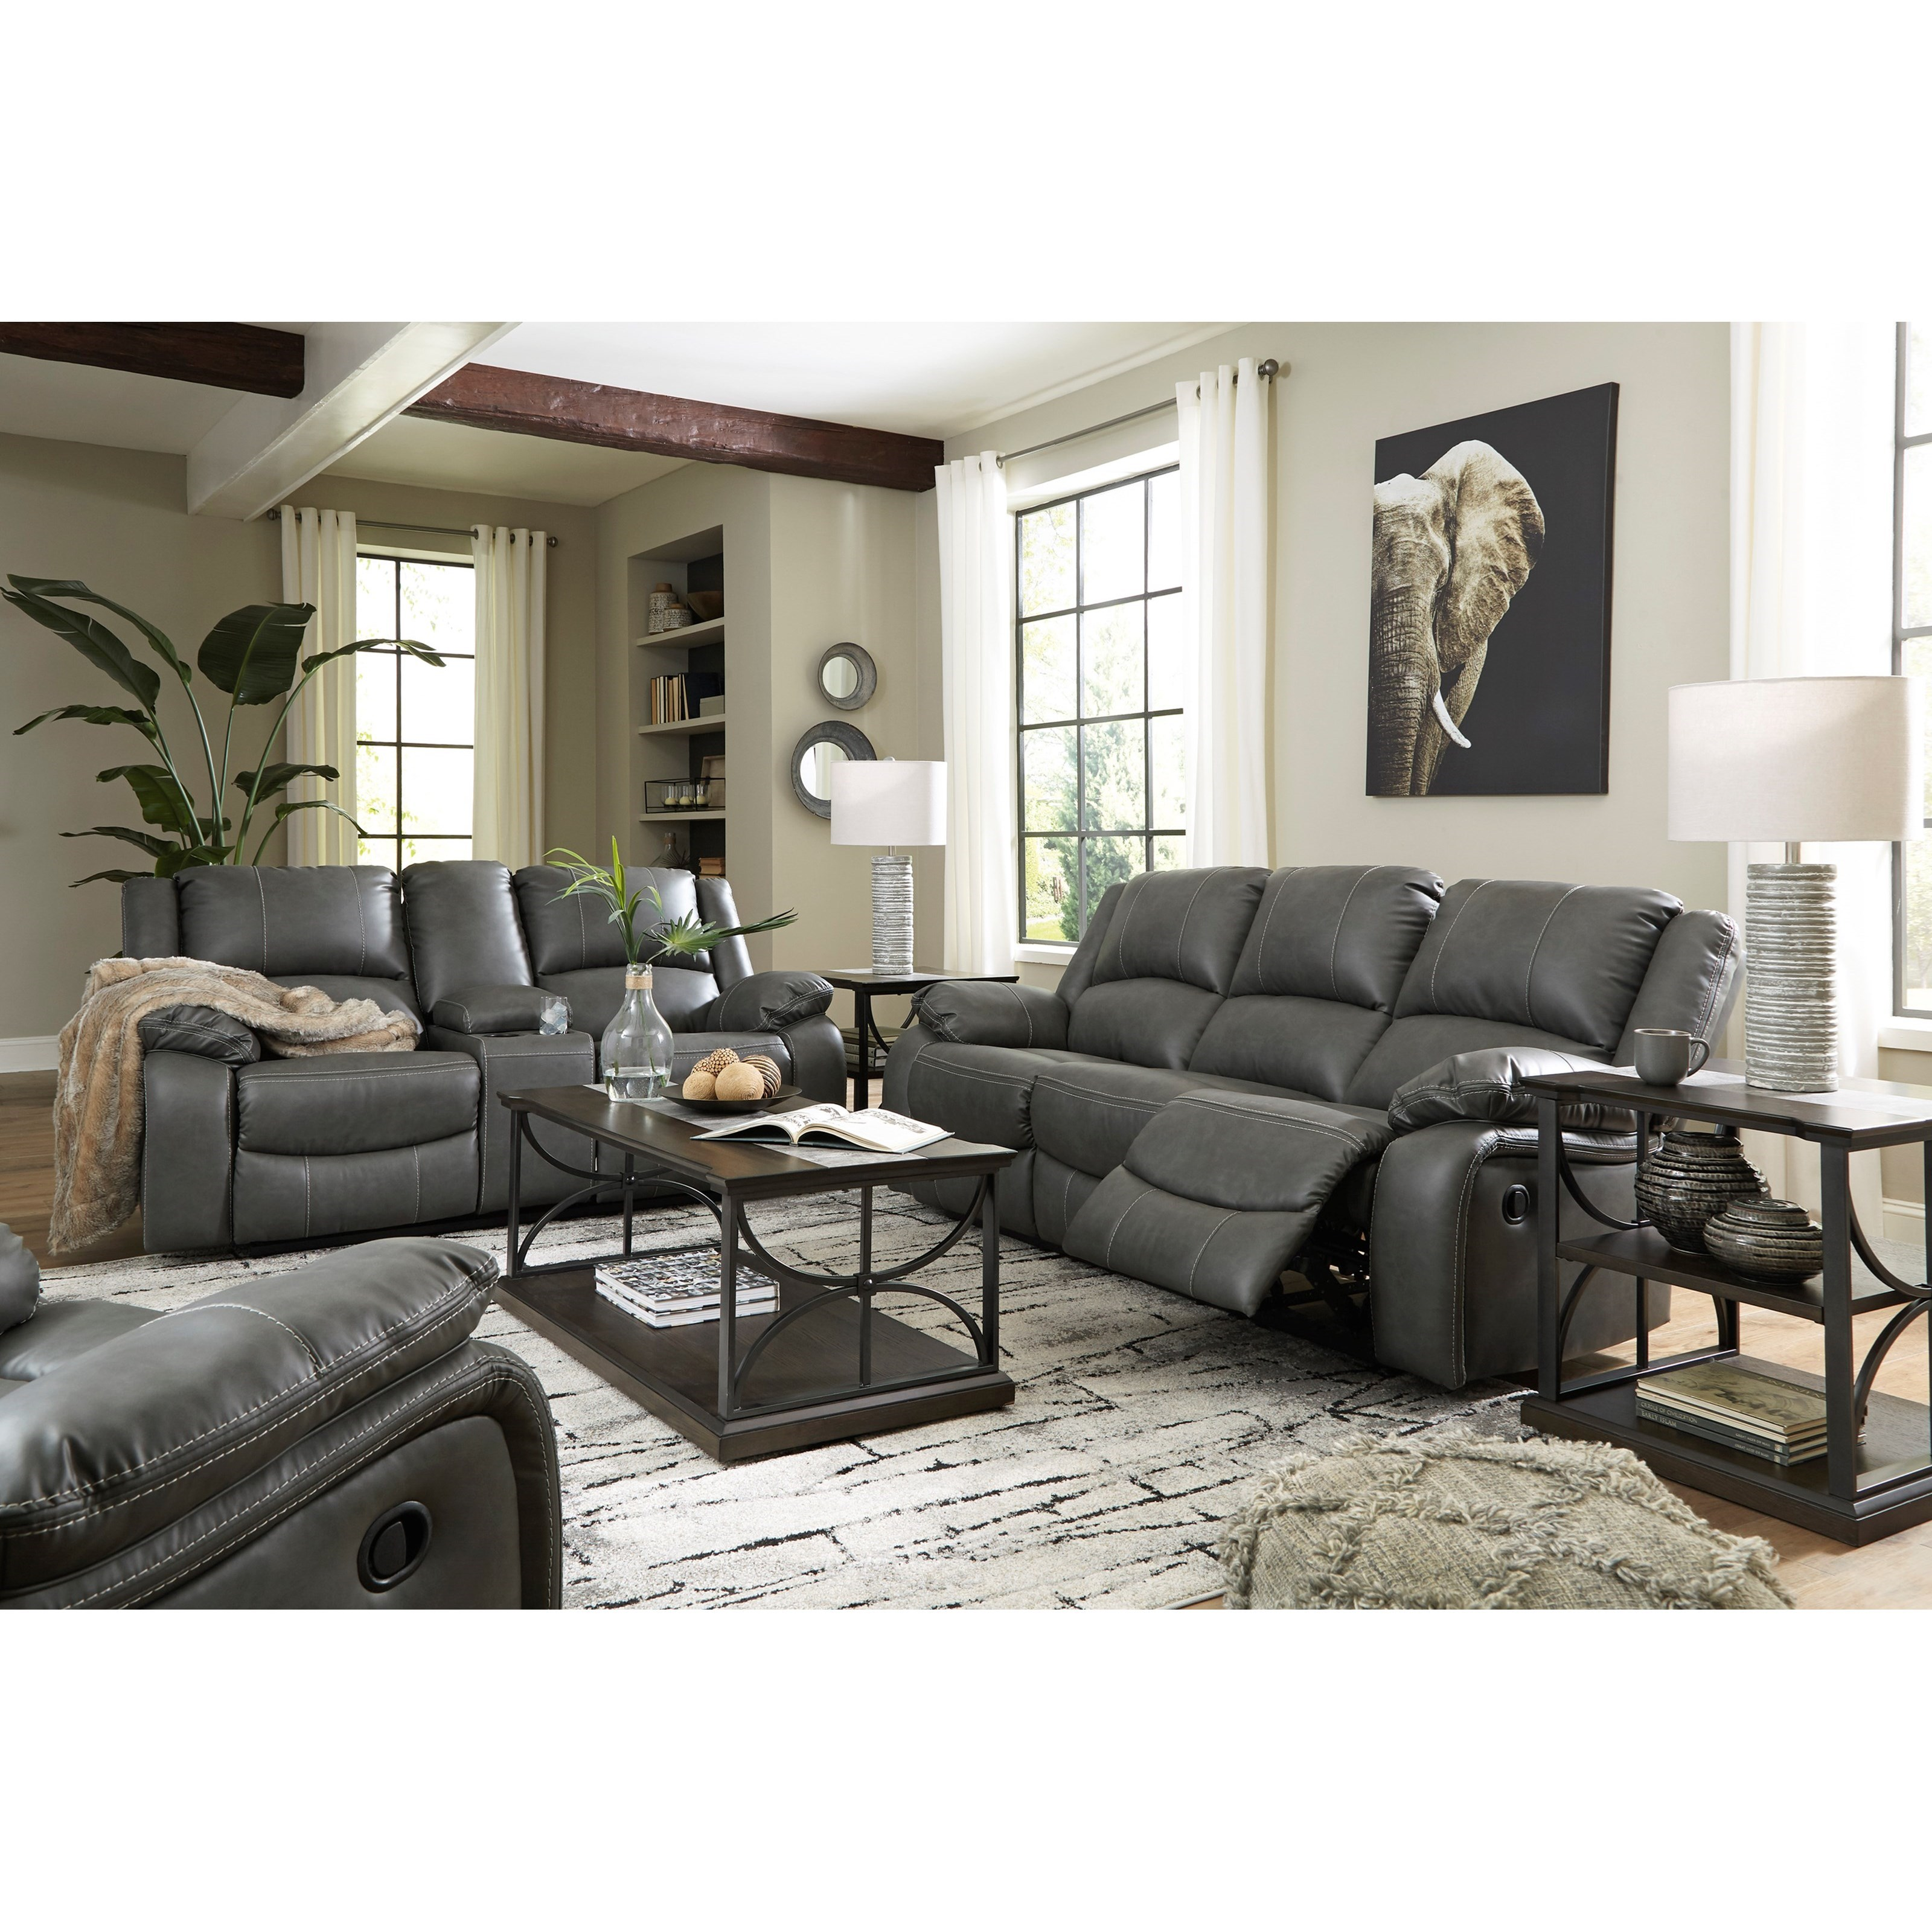 Calderwell Power Reclining Living Room Group by Signature Design by Ashley at Furniture Barn